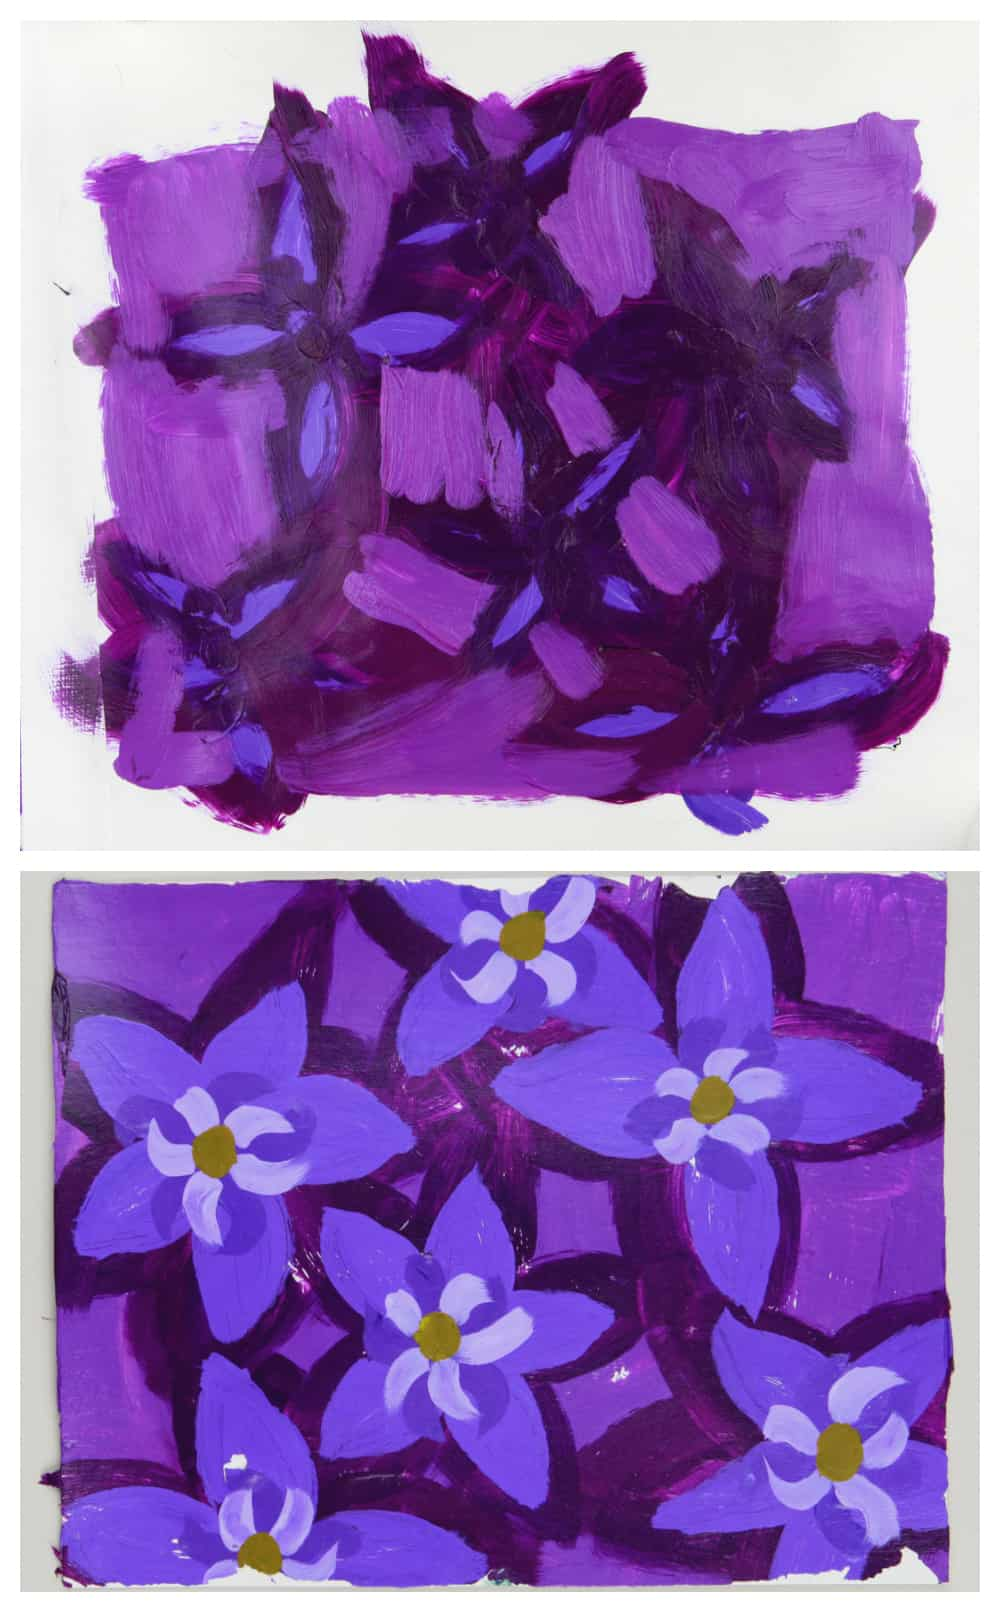 acrylic paint gel transfer steps showing front and back of purple flowers painted design